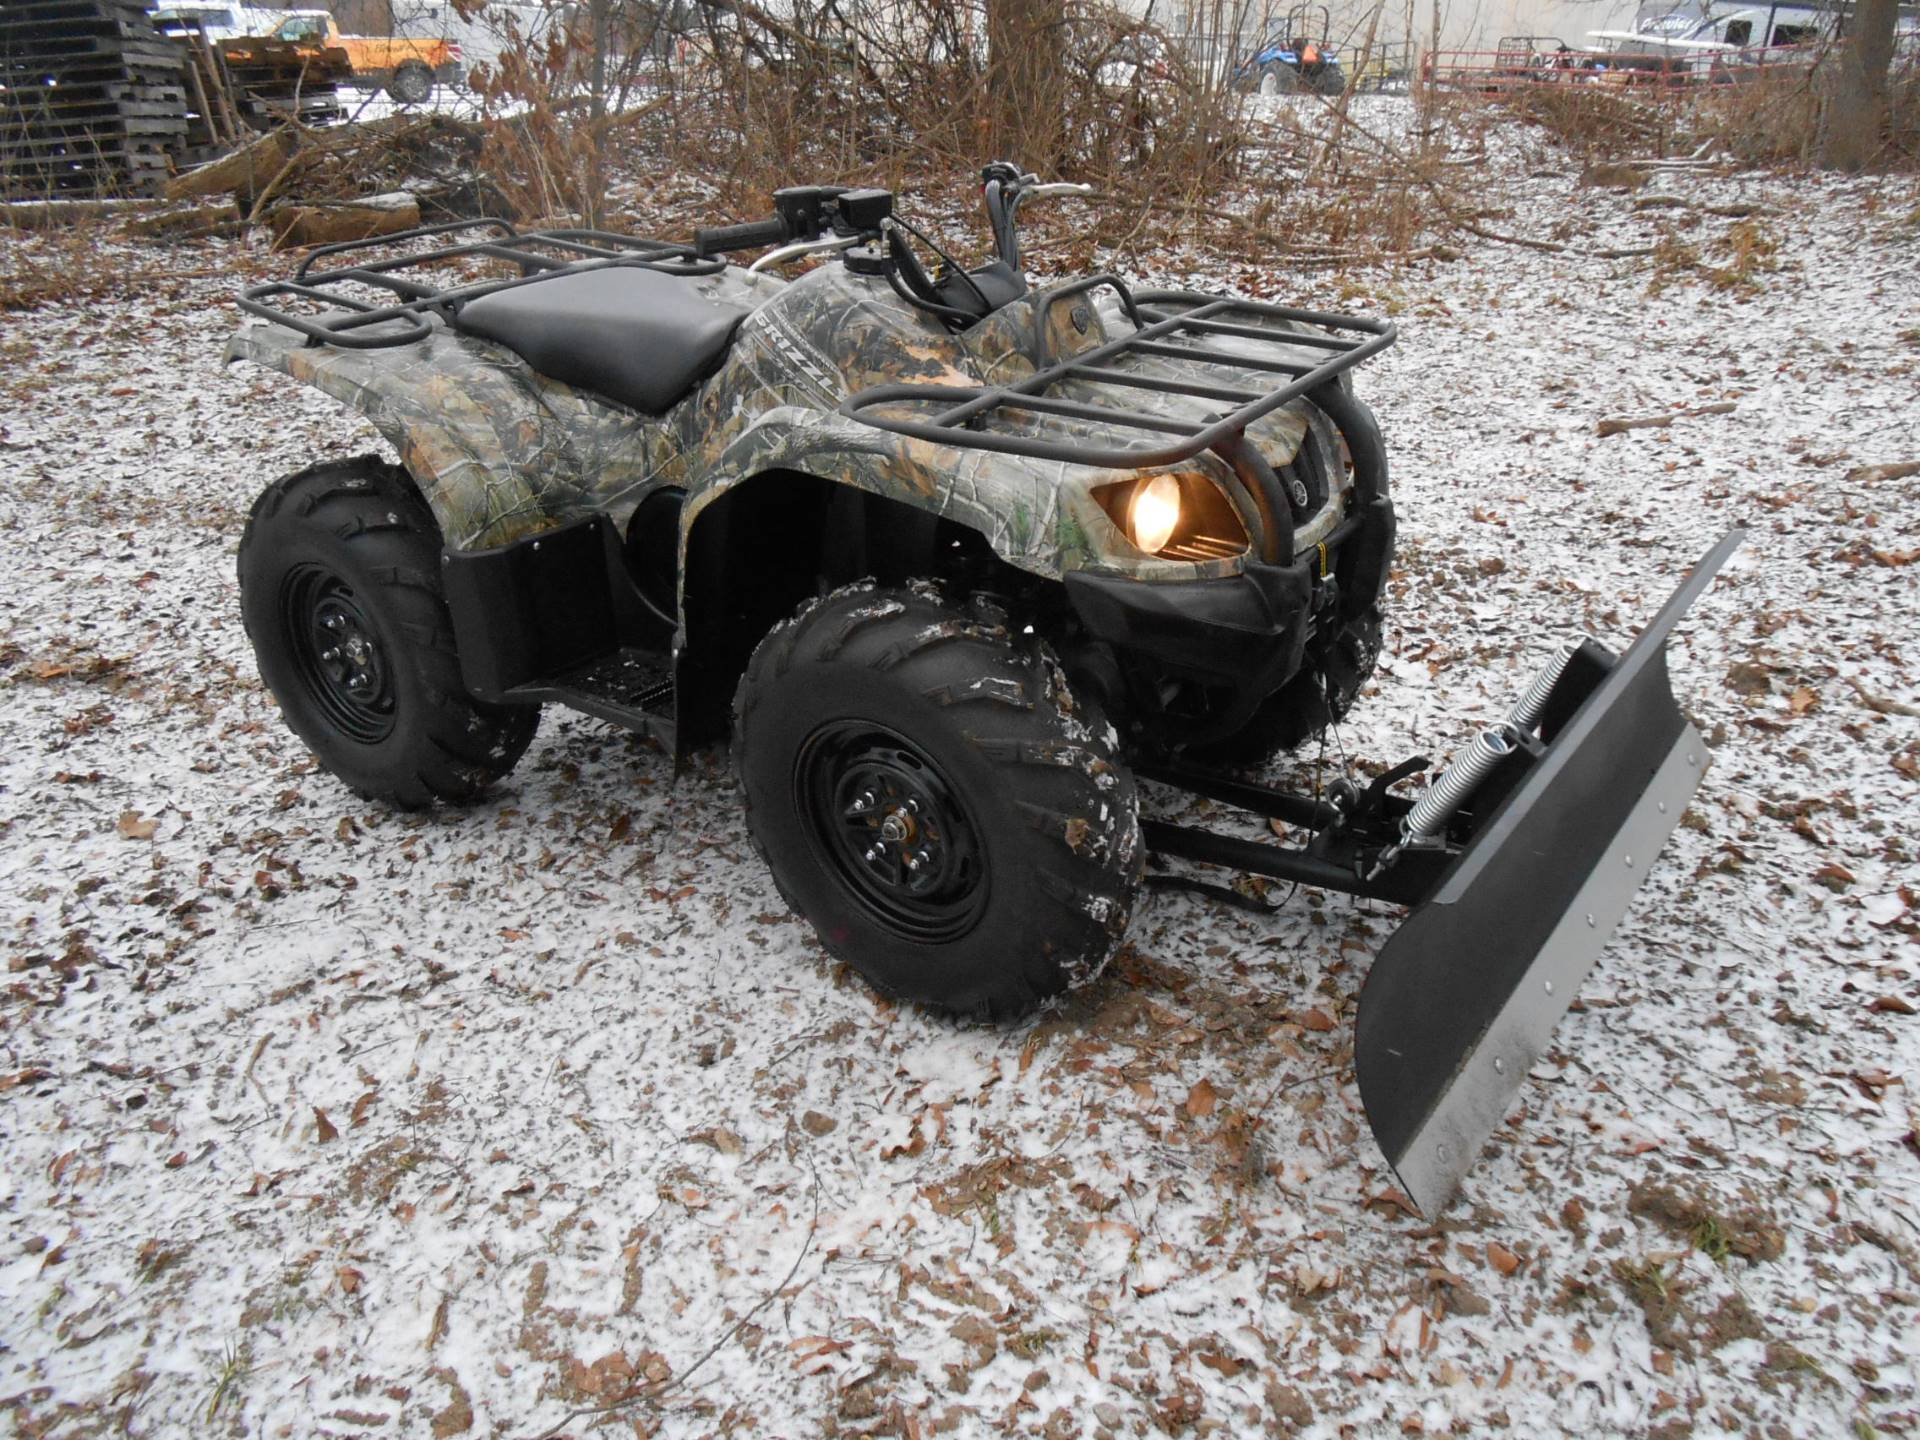 2011 Grizzly 350 Auto. 4x4 IRS